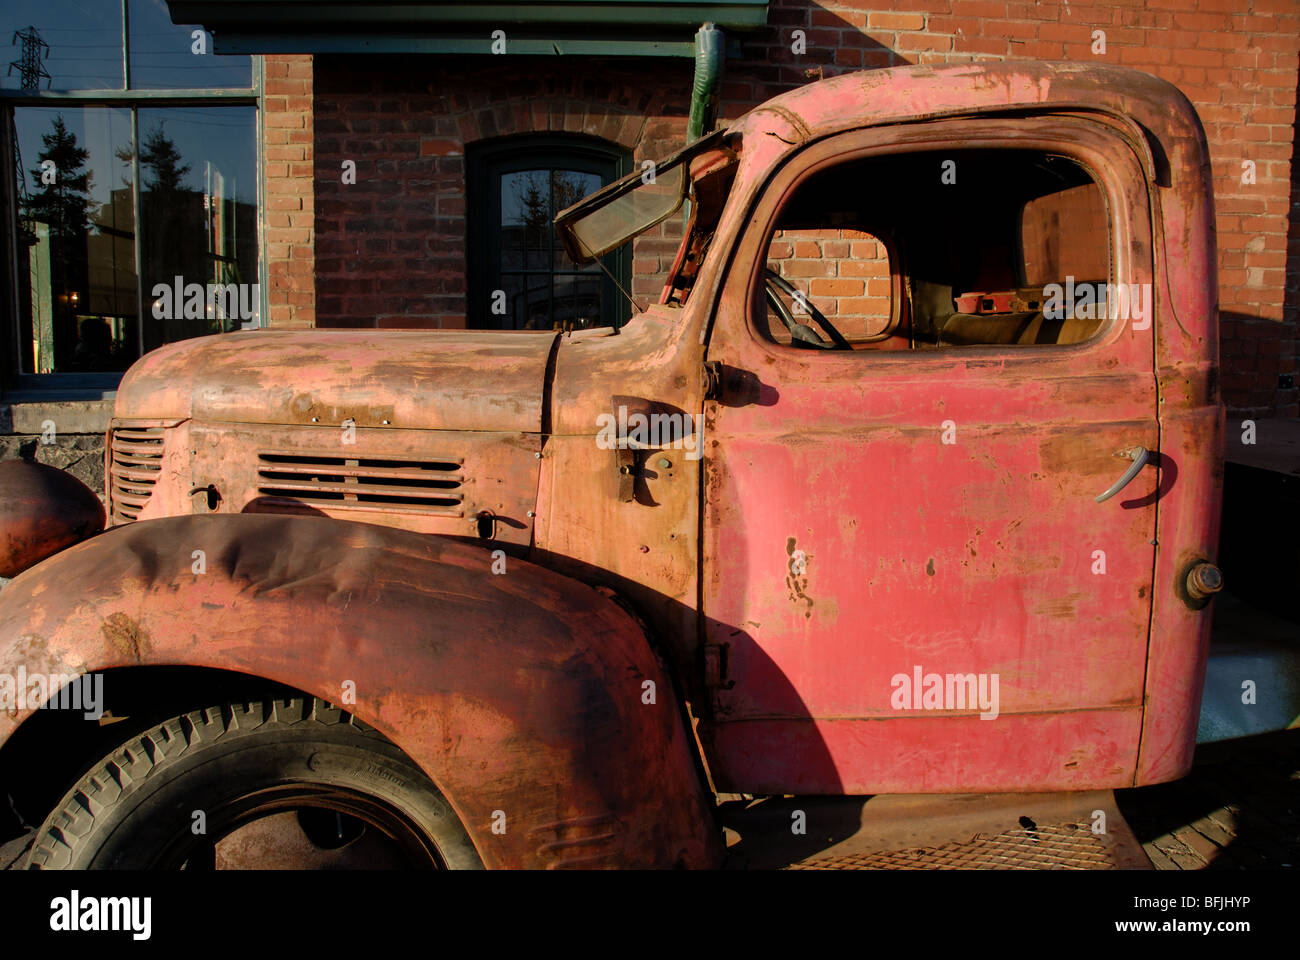 A Side View Of An Old Rusted And Abandoned Red 1947 Fargo Pickup Truck